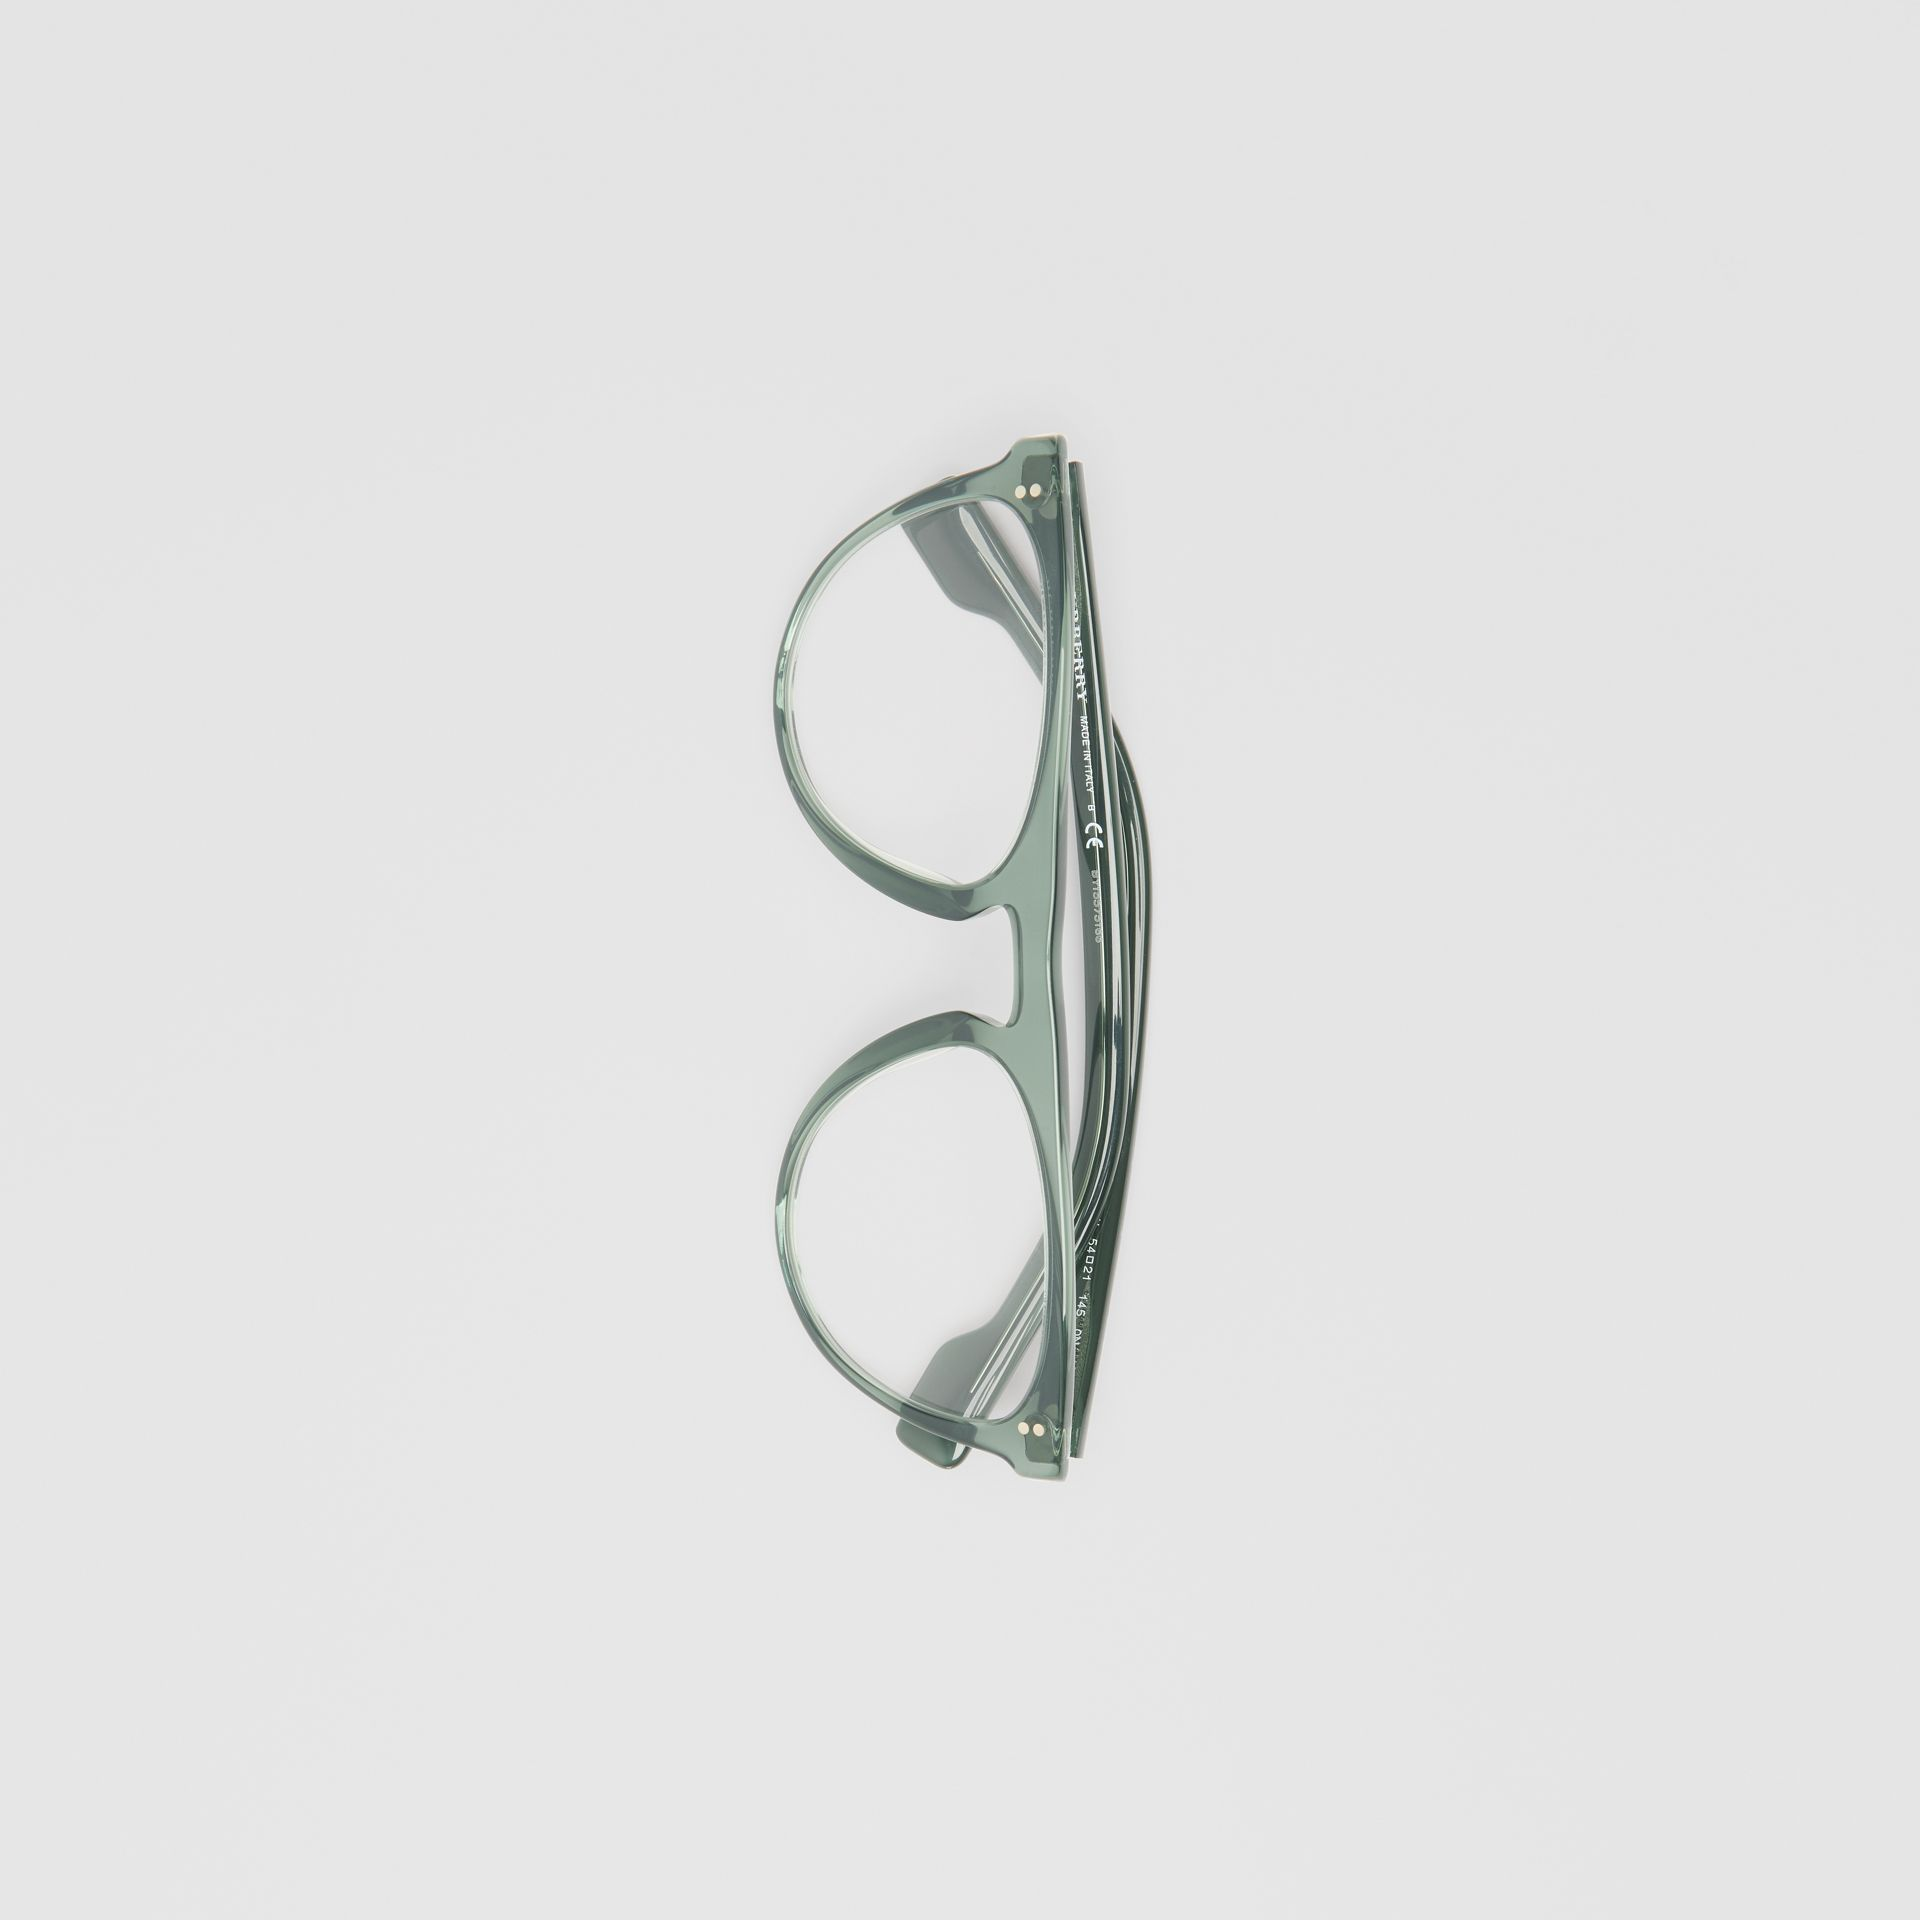 Keyhole D-shaped Optical Frames in Green - Men | Burberry Canada - gallery image 3